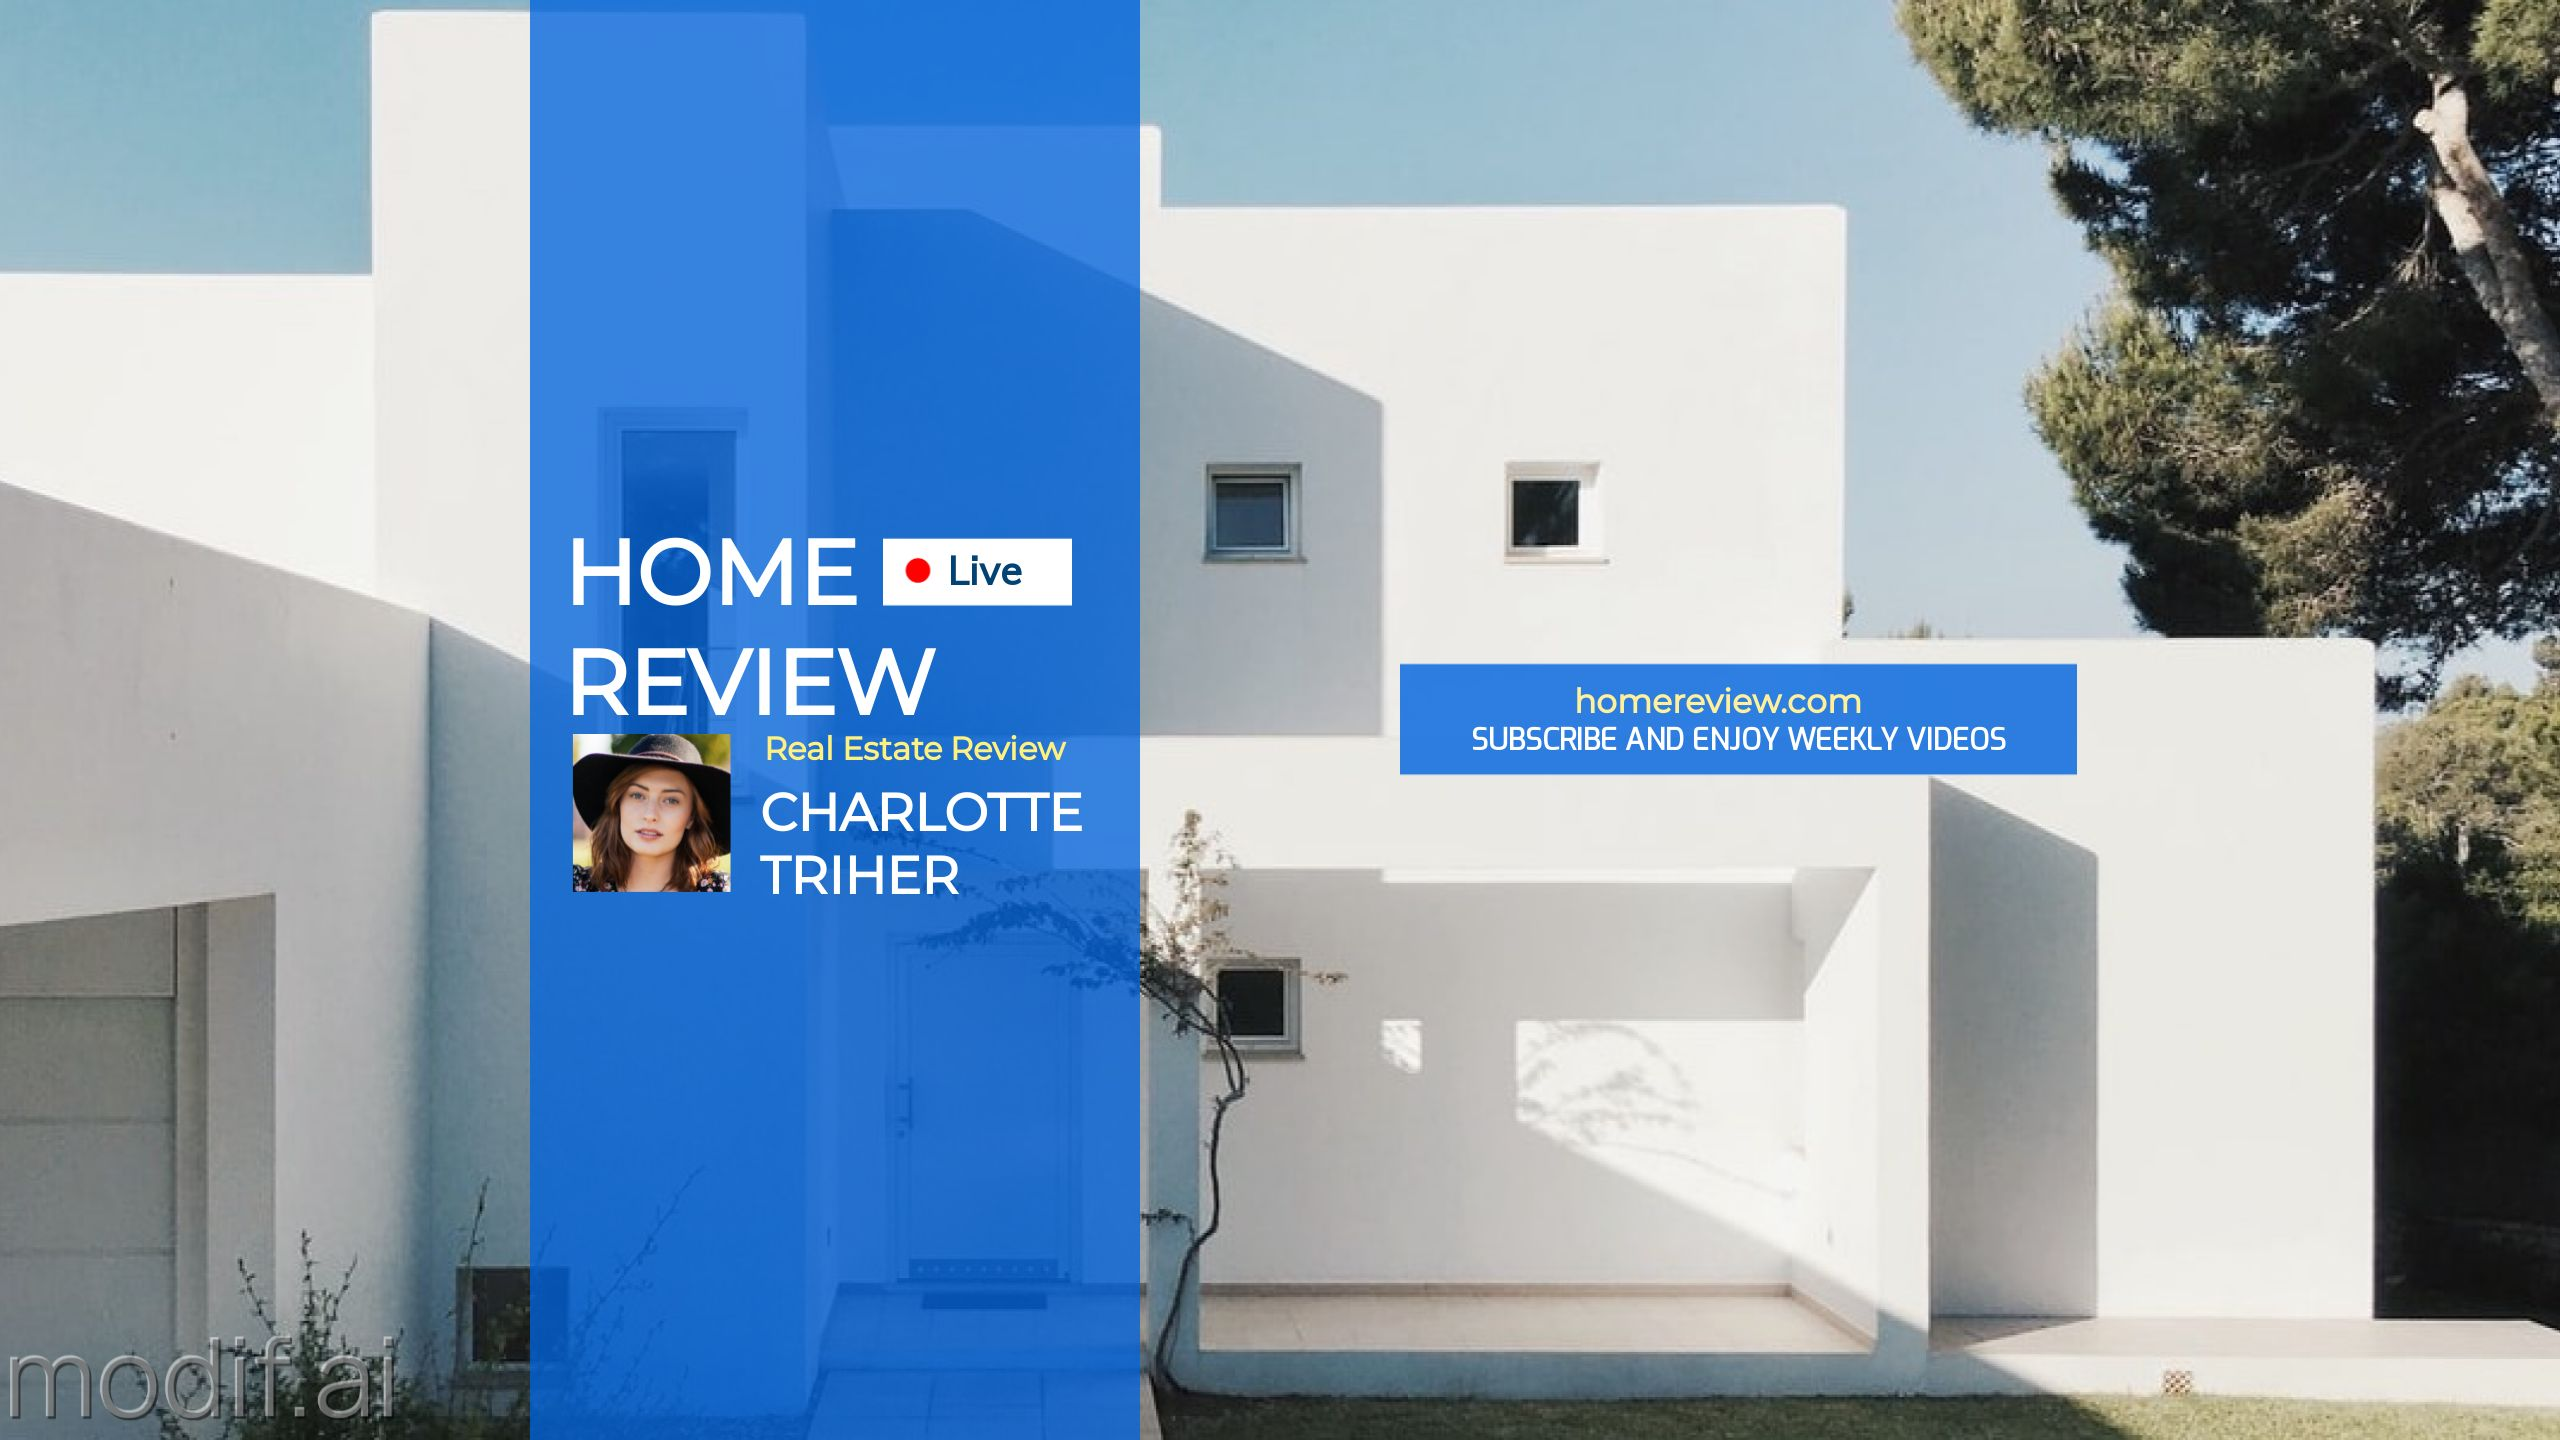 Home Review Youtube Channel Art